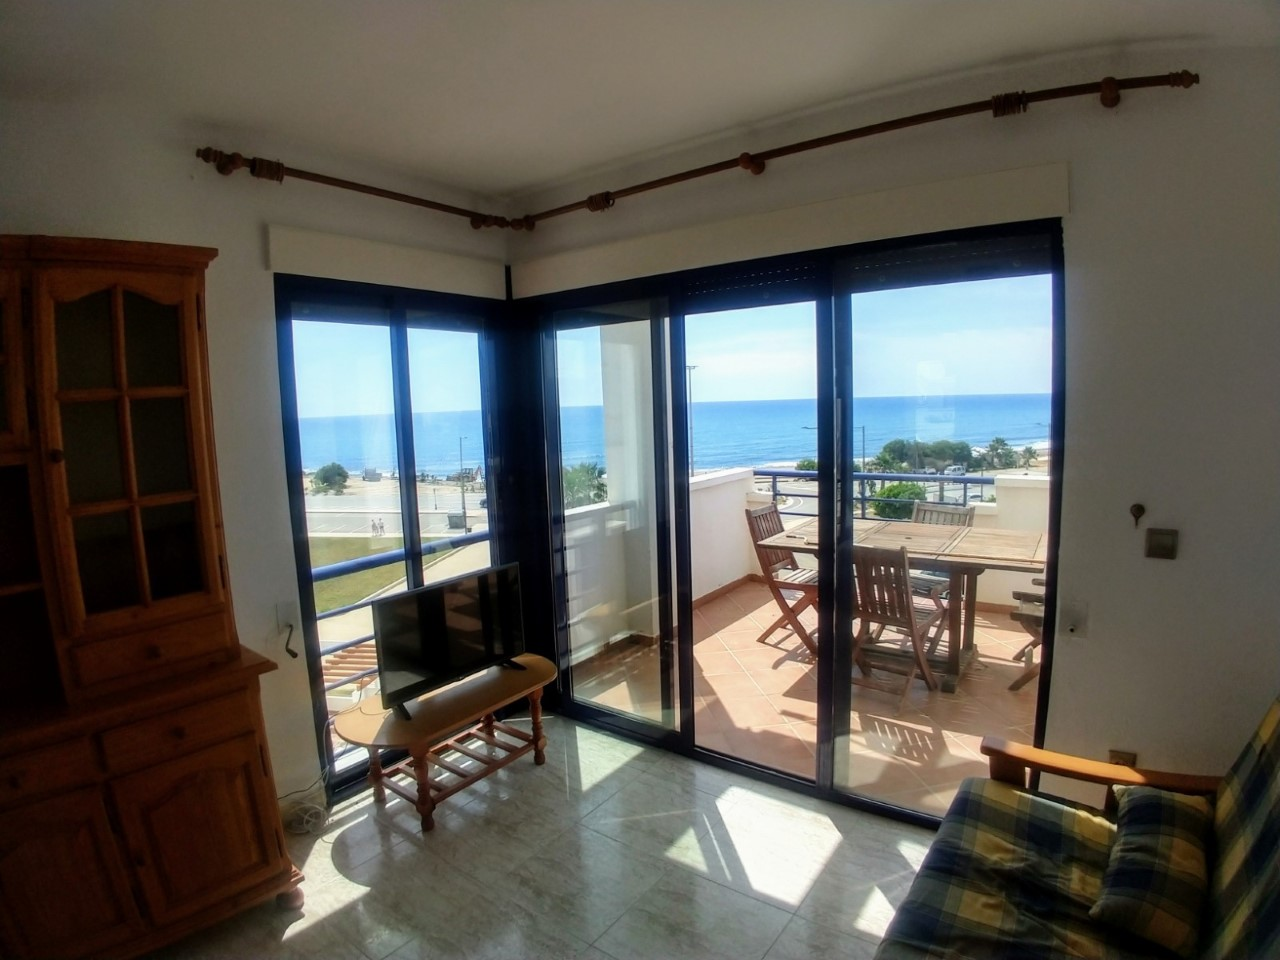 m1150-Penthouse apartment with stunning sea views.